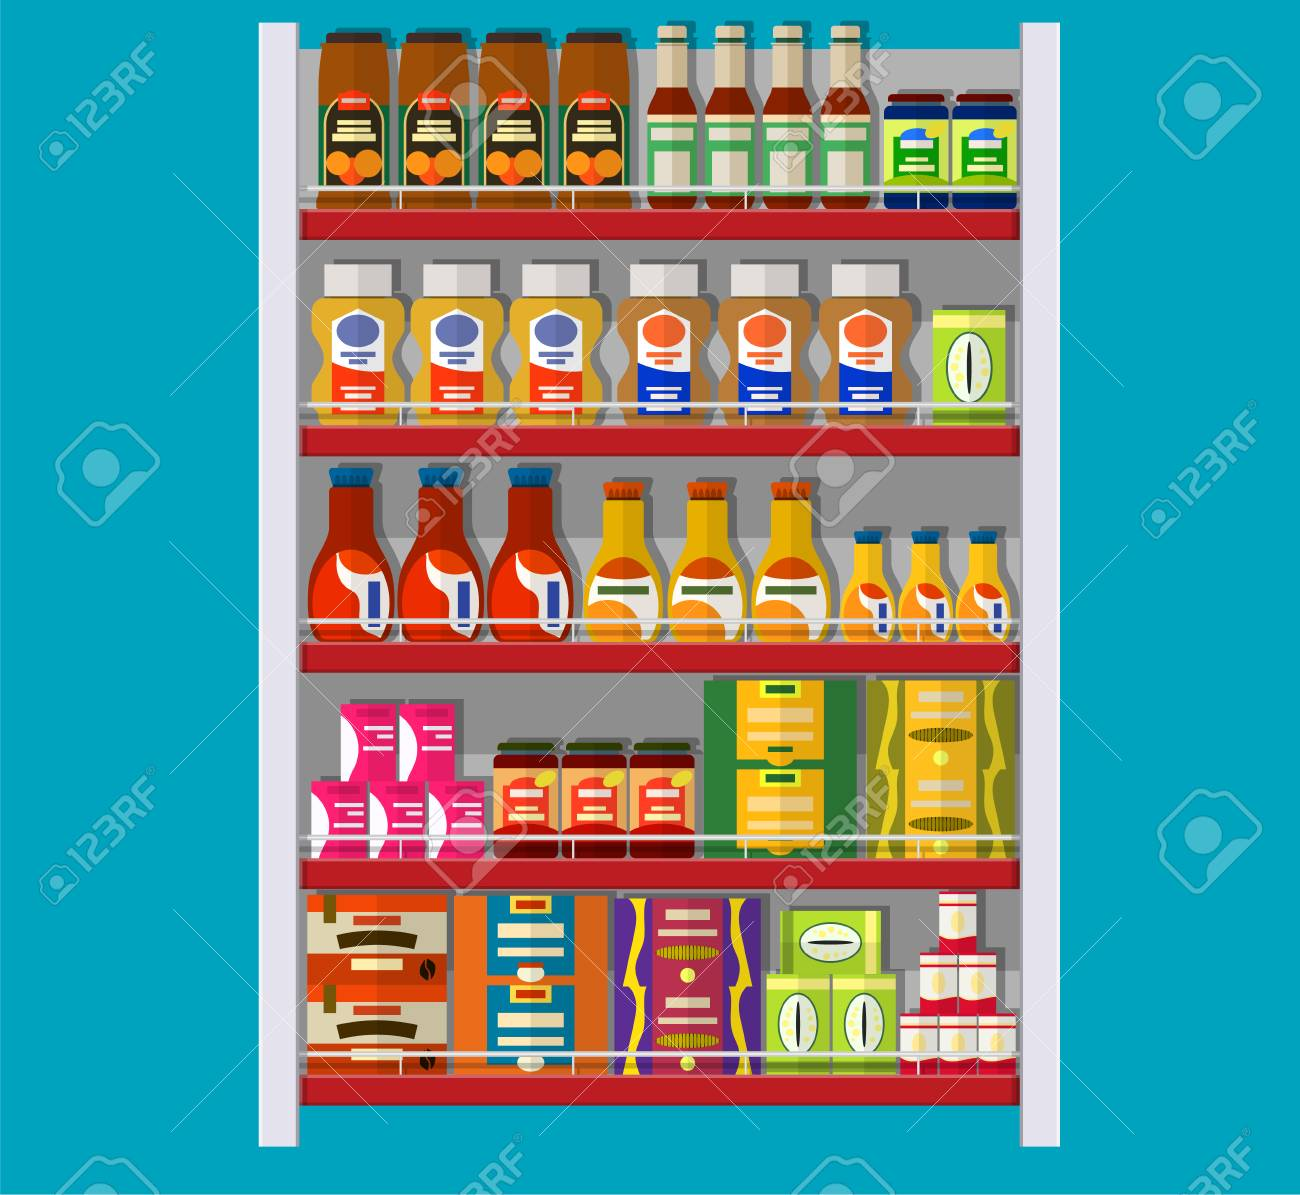 Supermarket Shelves With Groceries Goods And Products Food